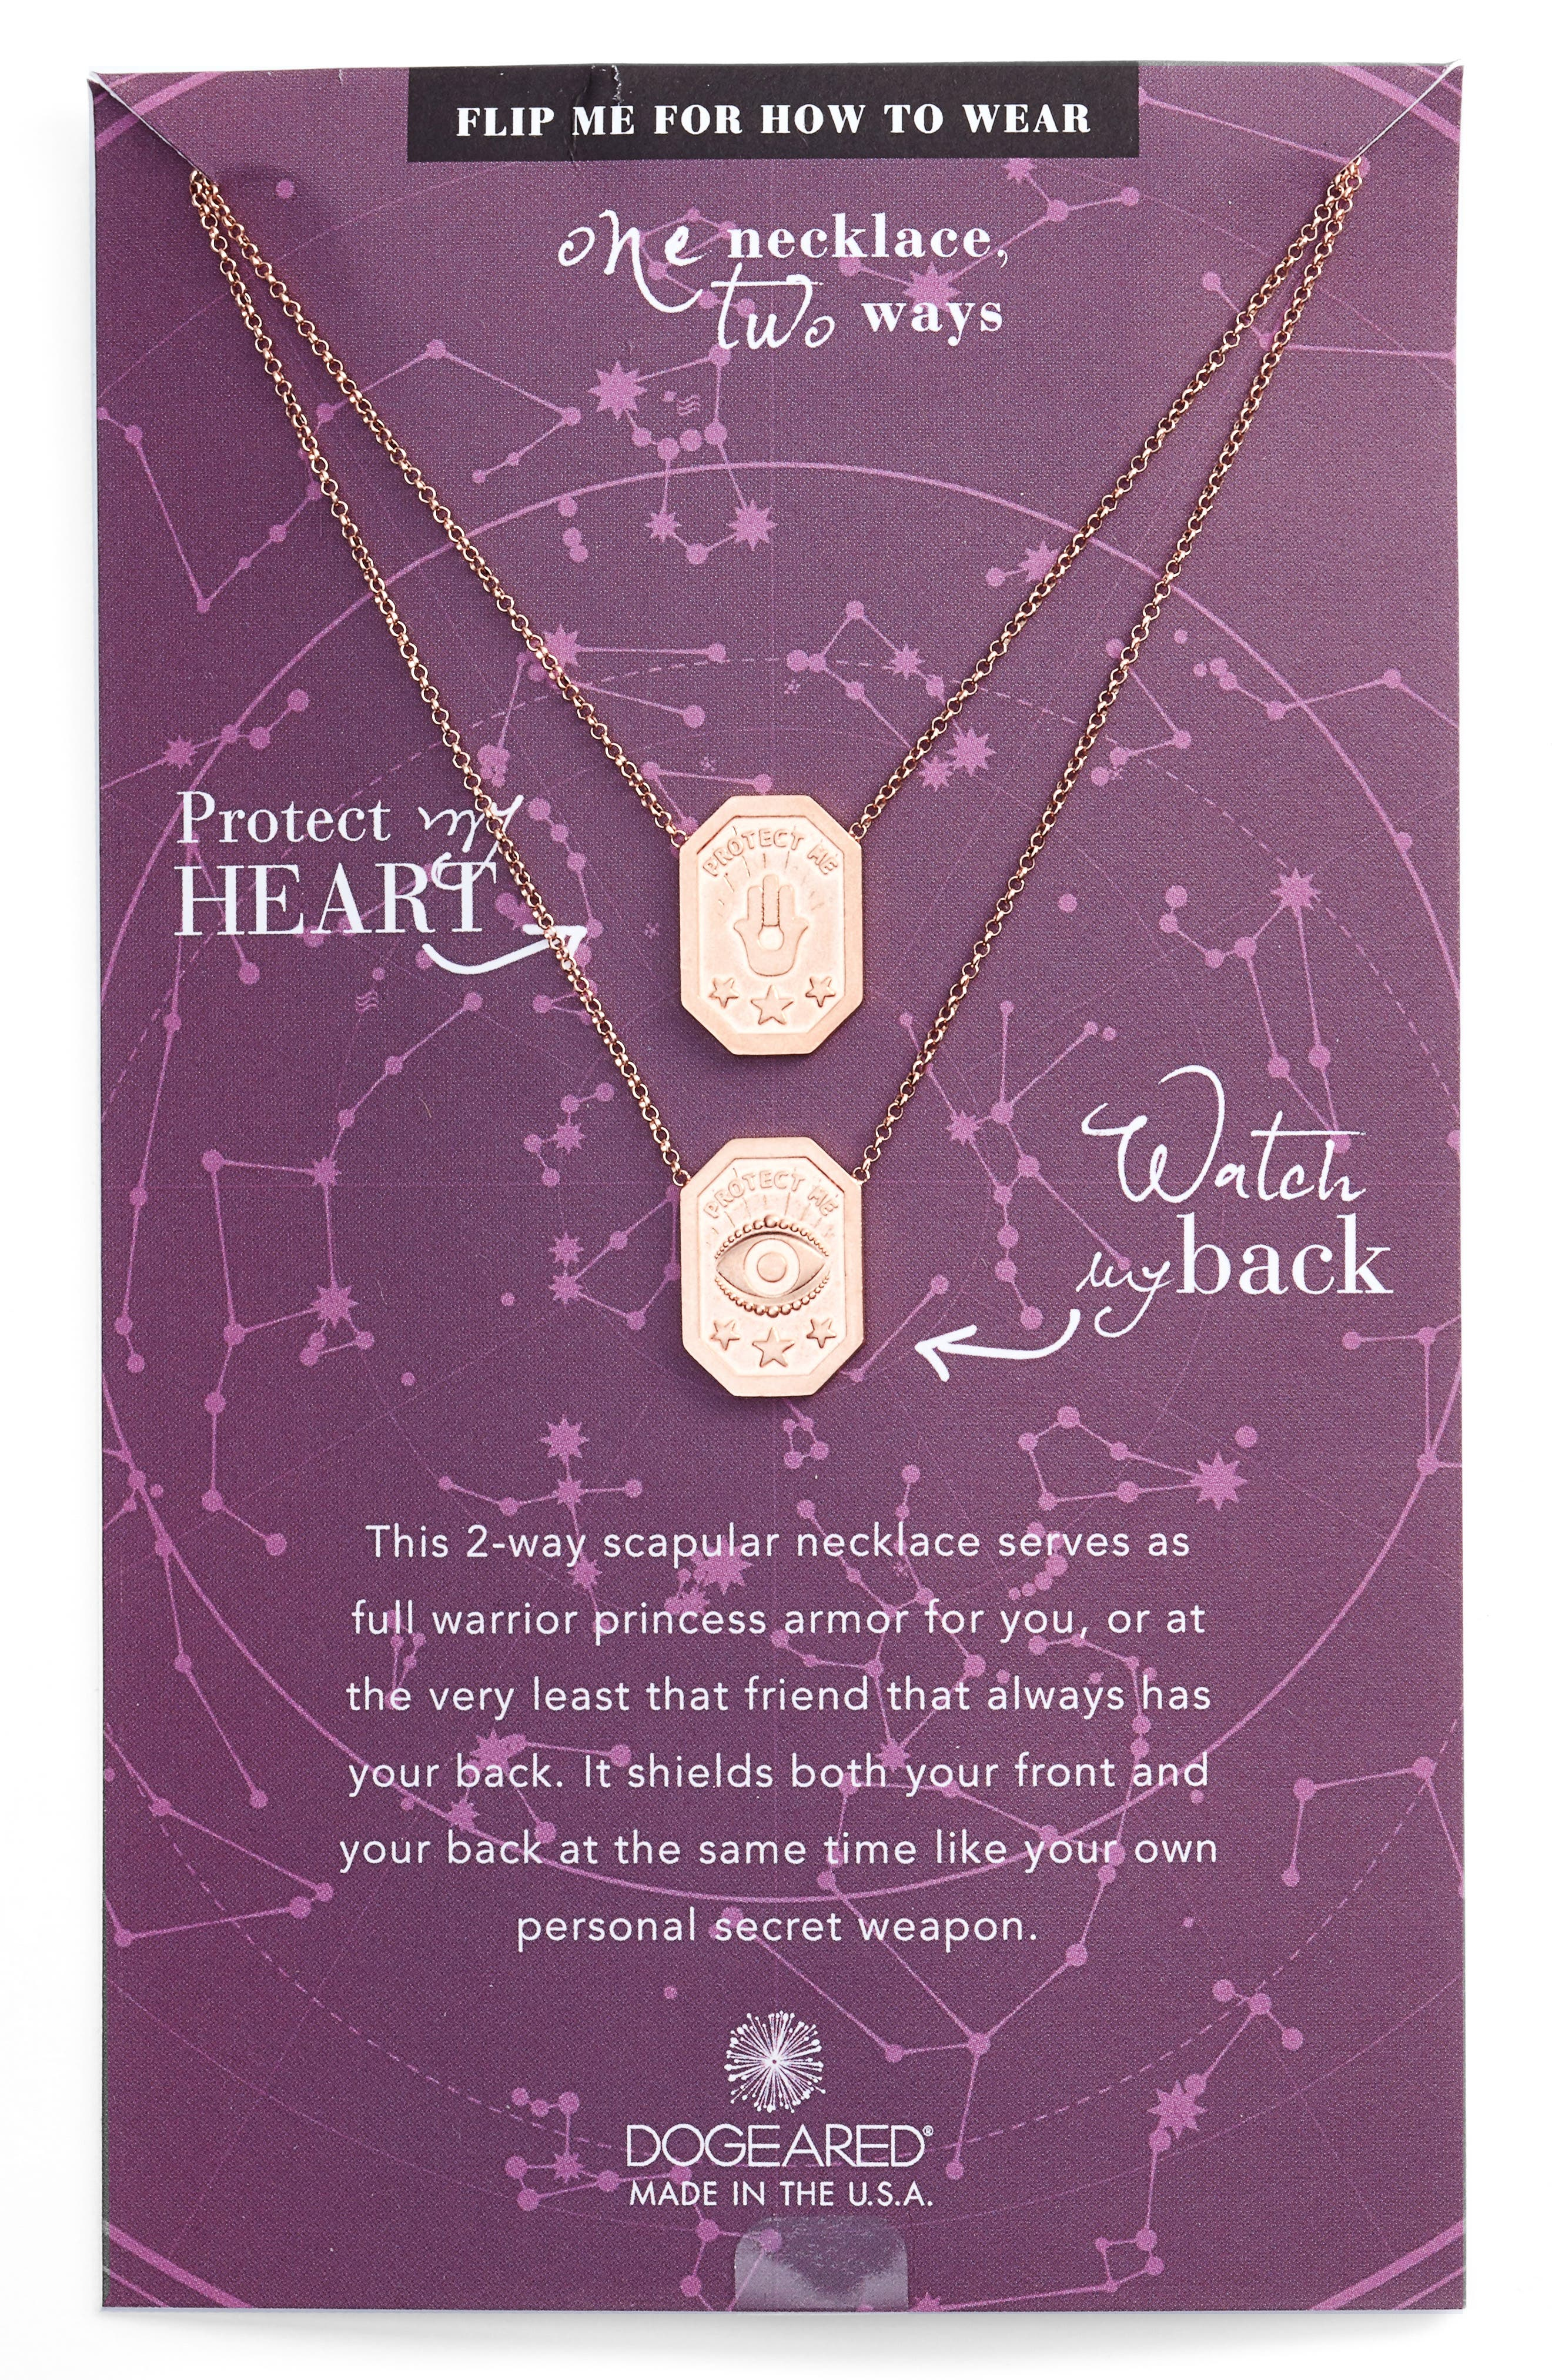 Dogeared Protect My Heart, Watch My Back Scapular Two-Way Necklace